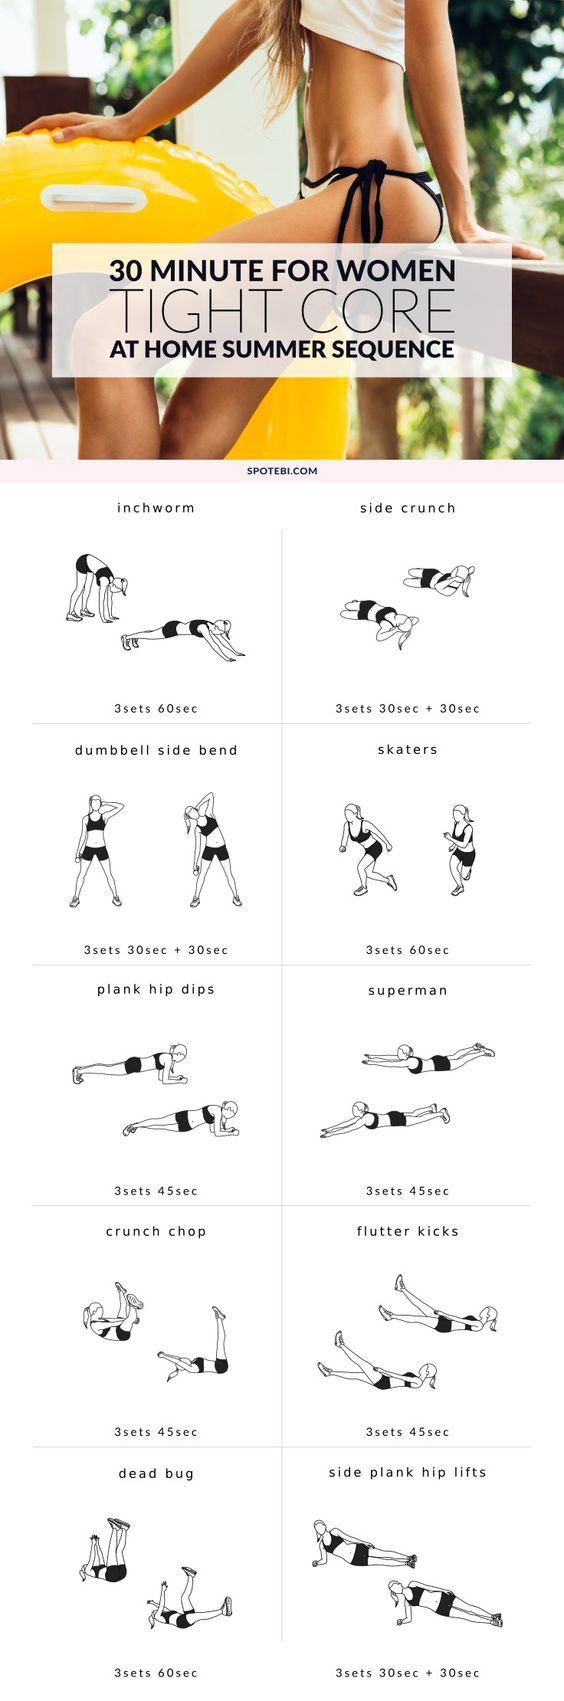 To get a toned belly and a small waist, women need to target all layers of muscles and hit the midsection from different angles. This Tight Core Summer Workout is designed to cinch your waist, strengthen your core and give you a tighter tummy! http://www.spotebi.com/workout-routines/30-minute-tight-core-summer-workout/: